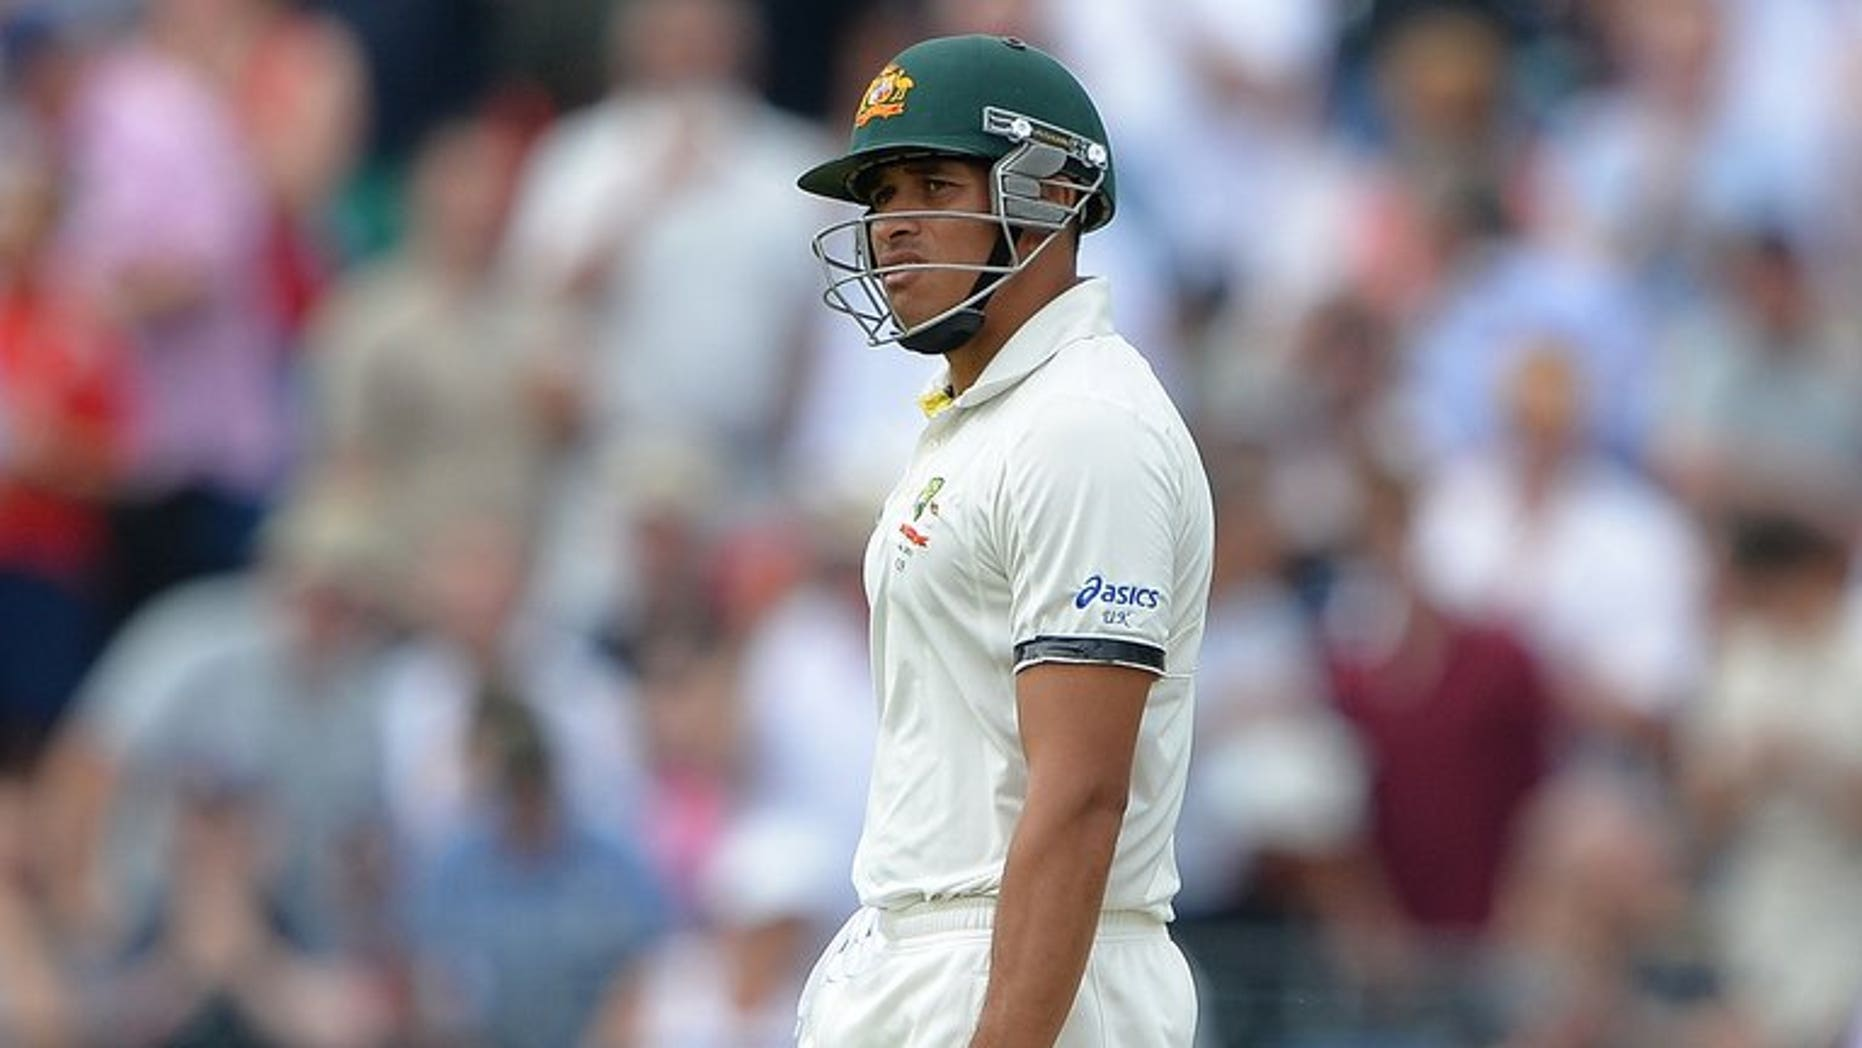 Australia's Usman Khawaja walks off after being given out during play on the first day of the third Ashes Test between England and Australia at Old Trafford in Manchester, England, on August 1, 2013. Khawaja, who faces a battle to keep his place in the Australia team for this week's final Ashes Test, has had his central playing contract upgraded, Cricket Australia said Monday.